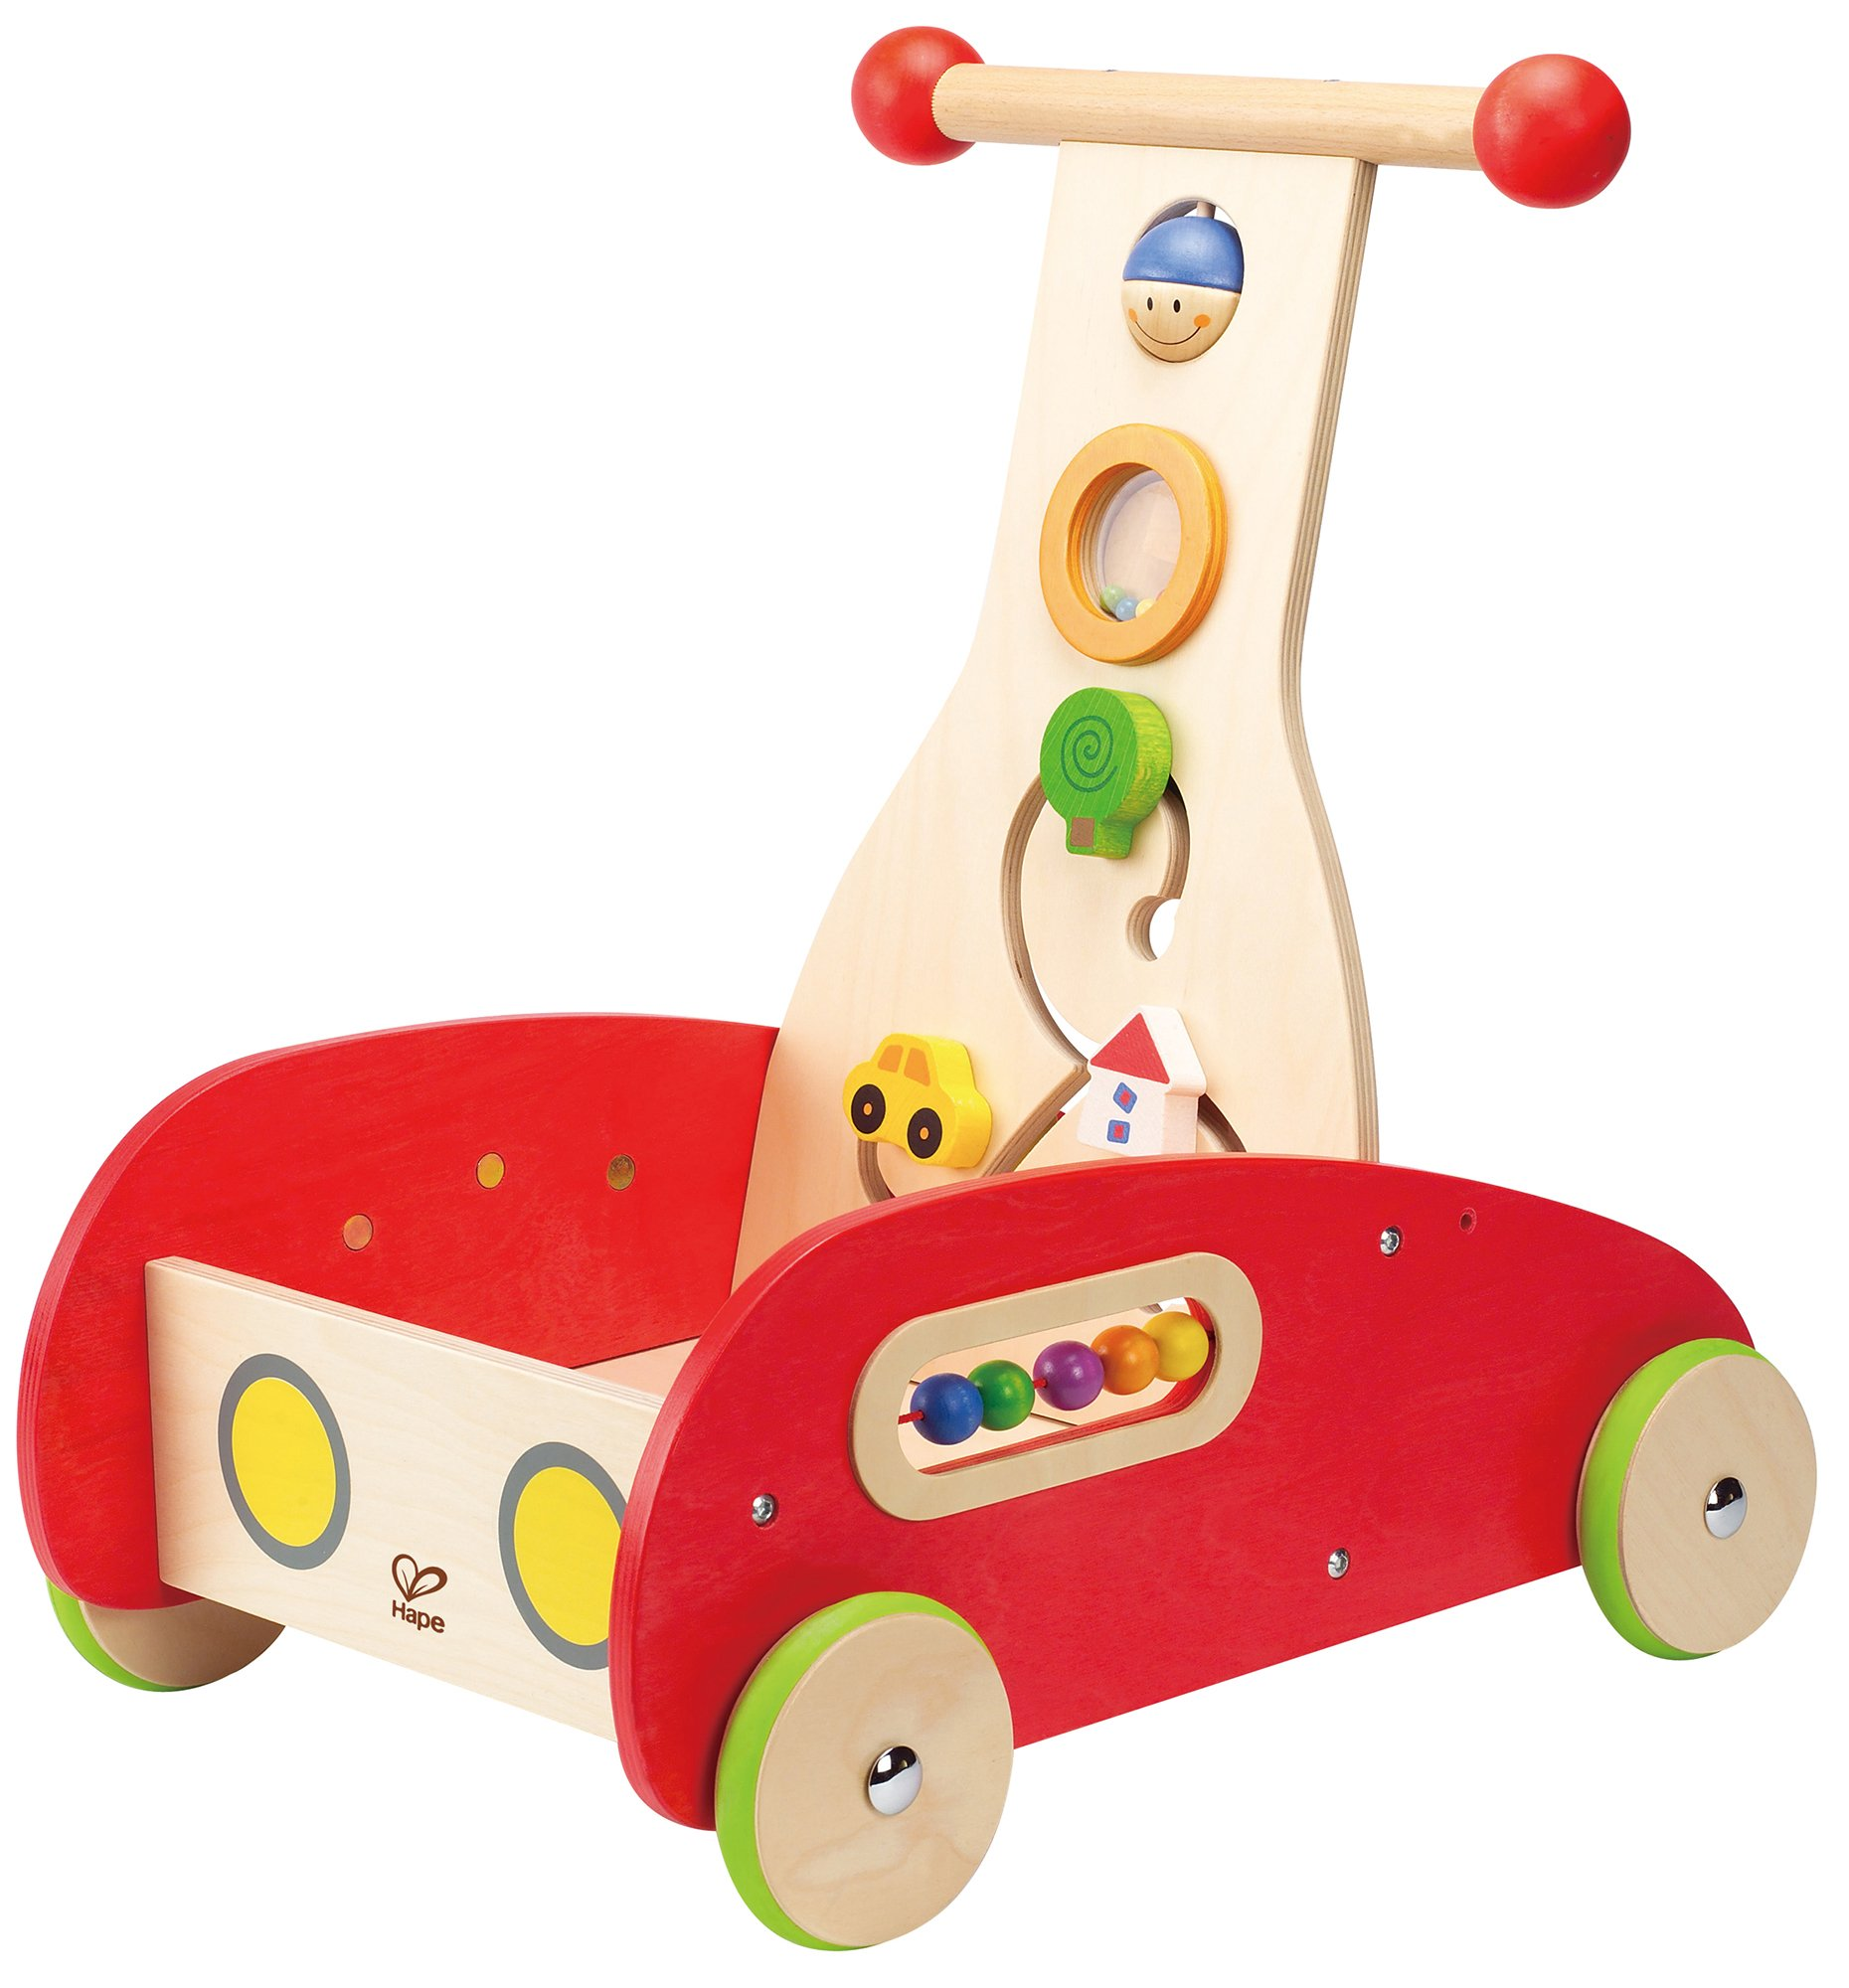 Hape Award Winning Wonder Walker Push and Pull Toddler Walking Toy